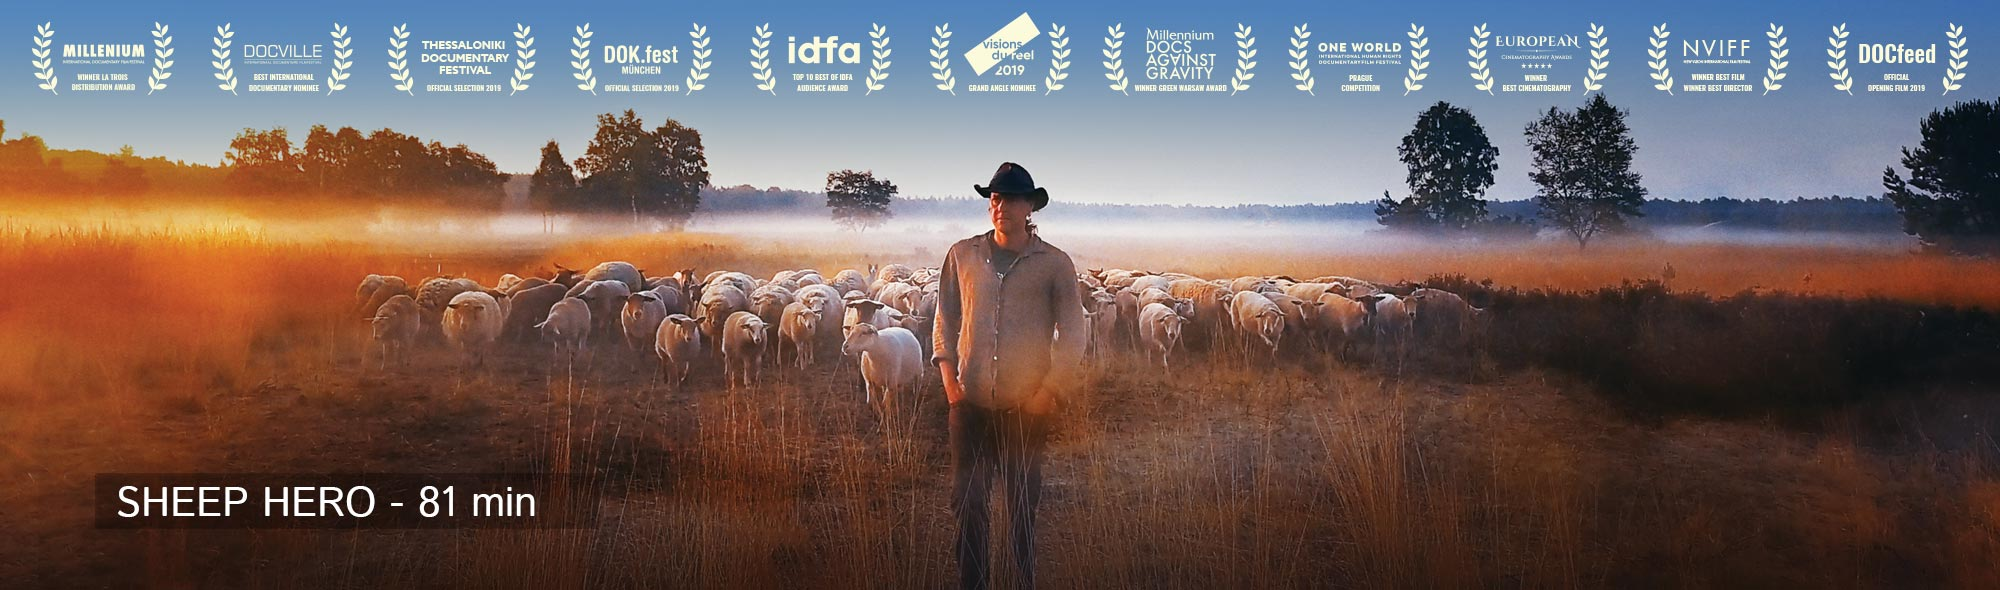 SHEEP-HERO-DOCUMENTARY